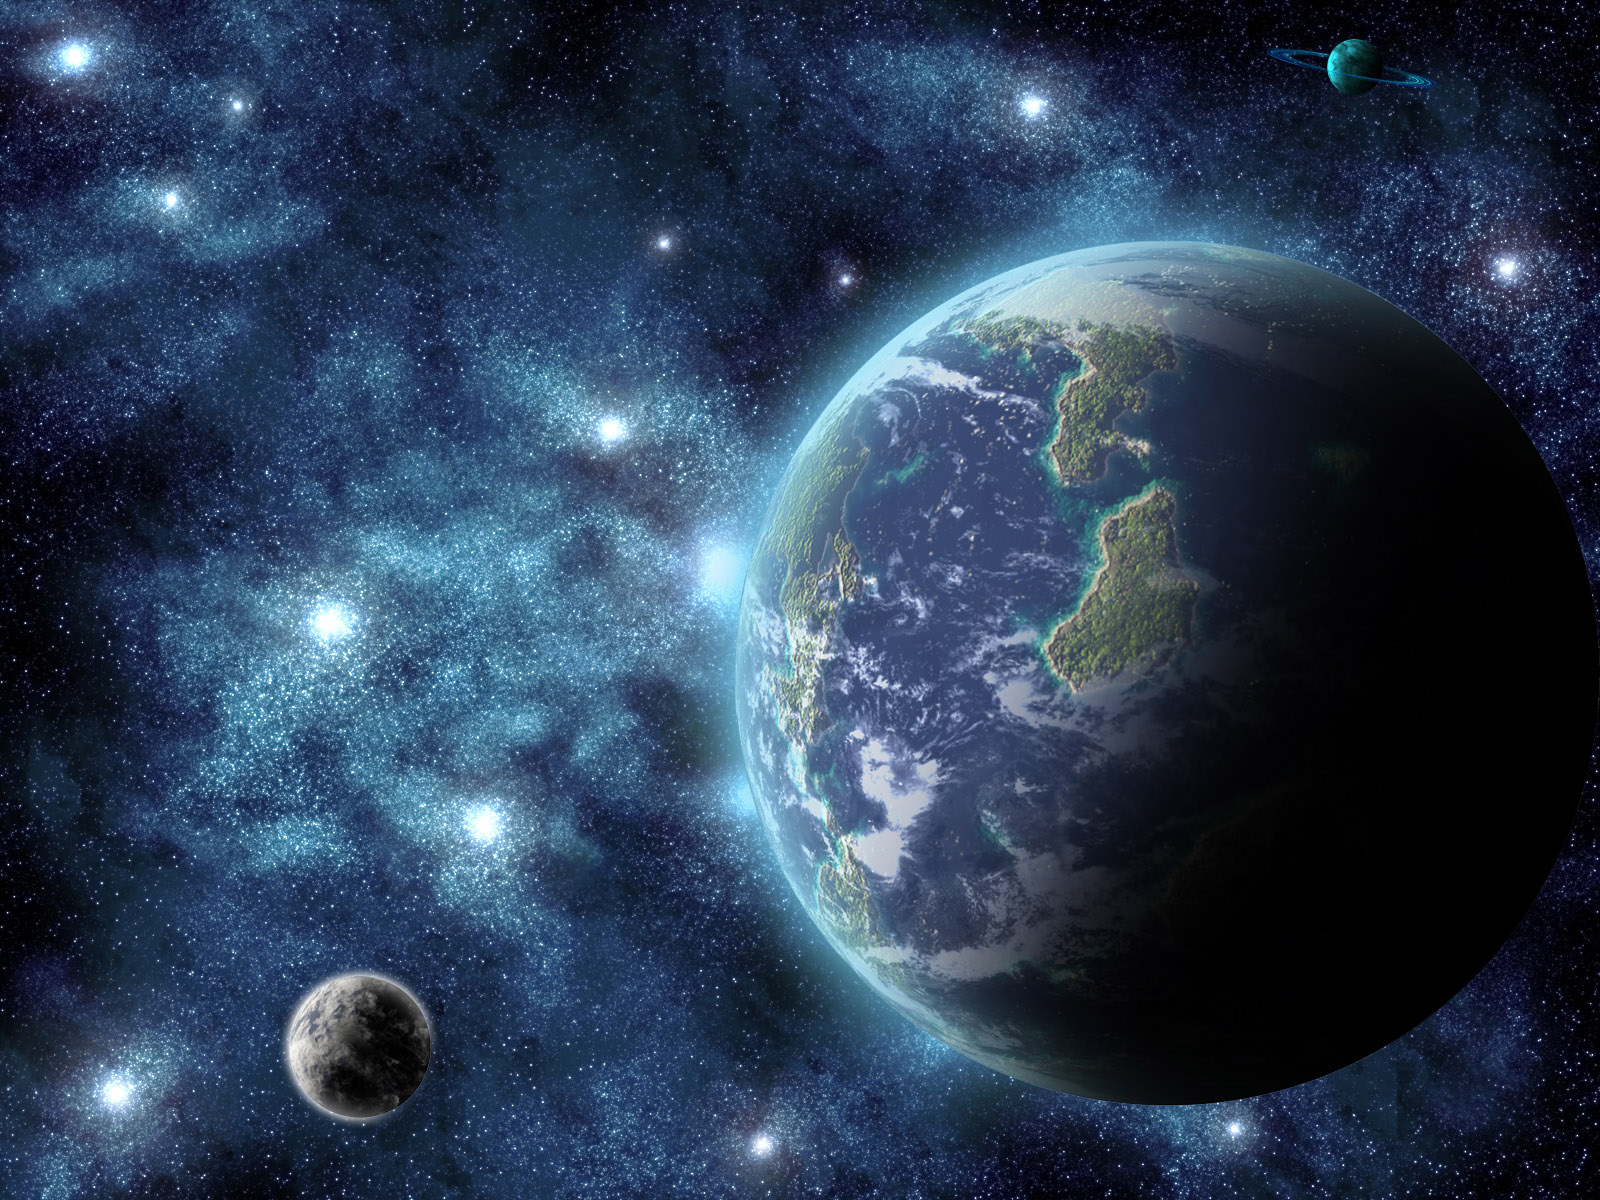 Fantastic Wallpaper Mobile Space - cpBjX4  Collection_631615.jpg